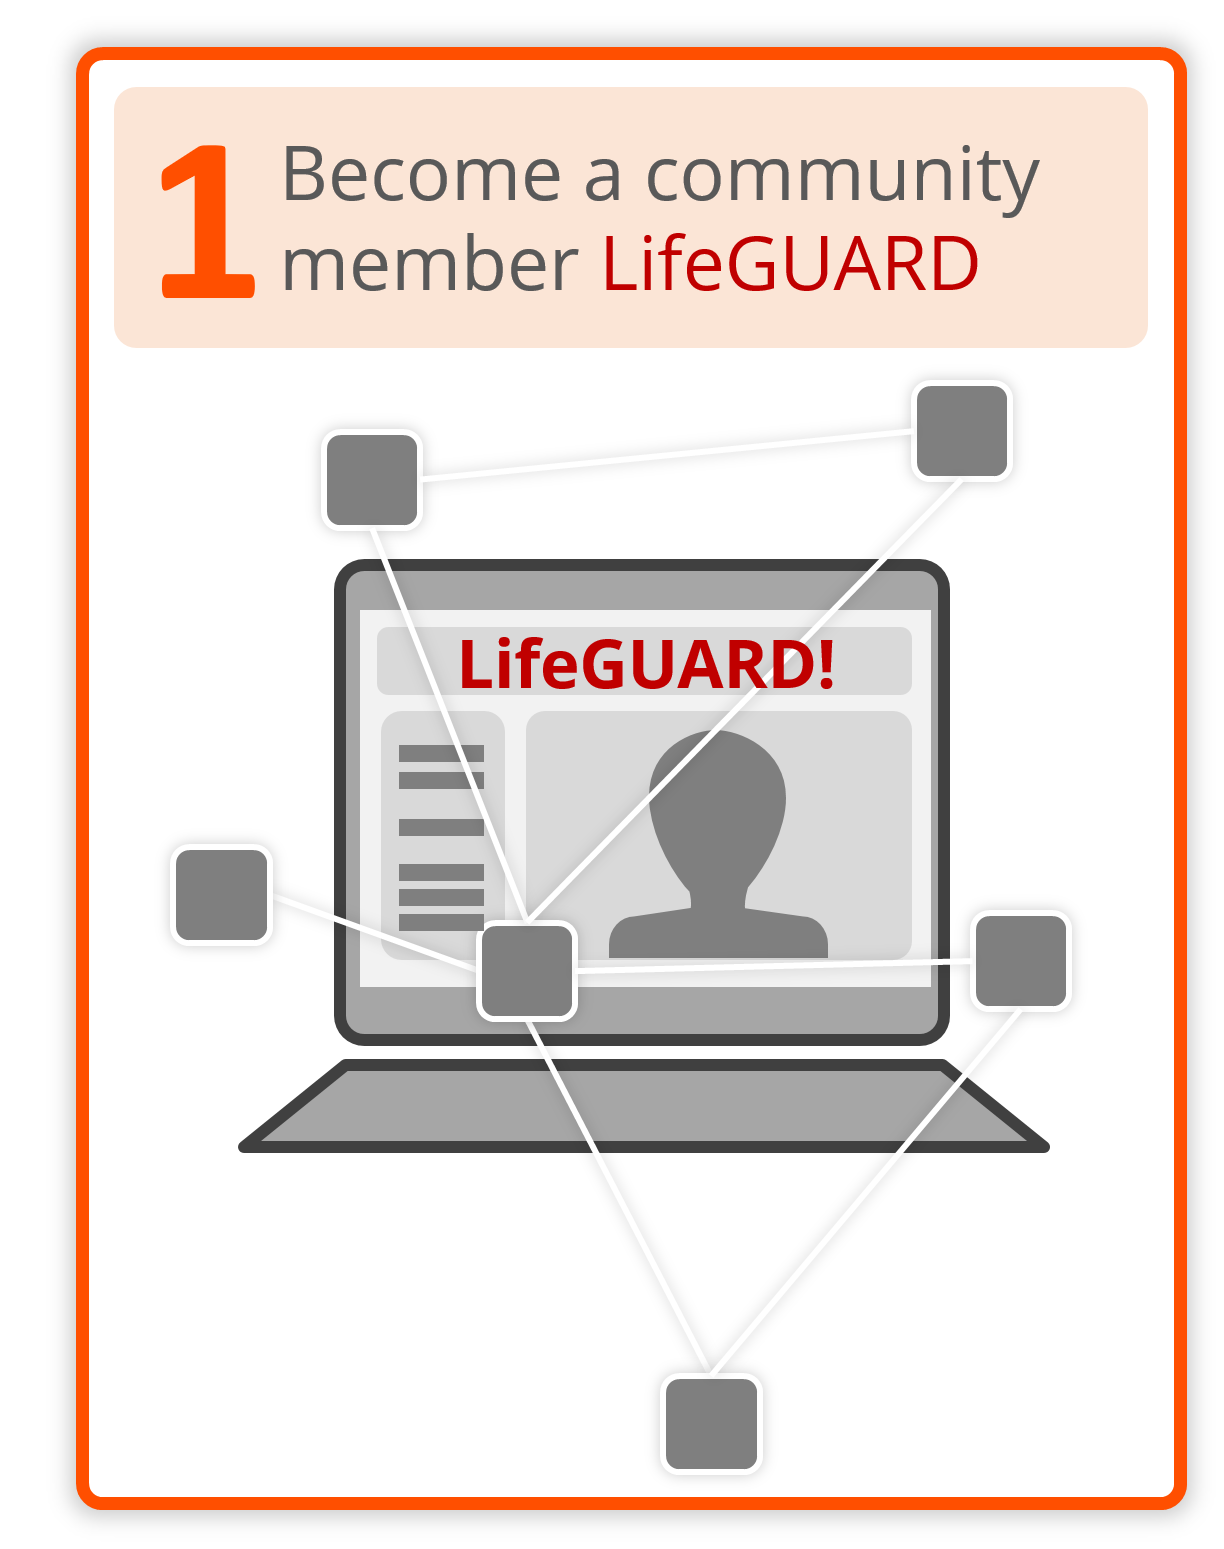 Live Coding Help Member LifeGUARD Step 1 - Become A Community Member LifeGUARD